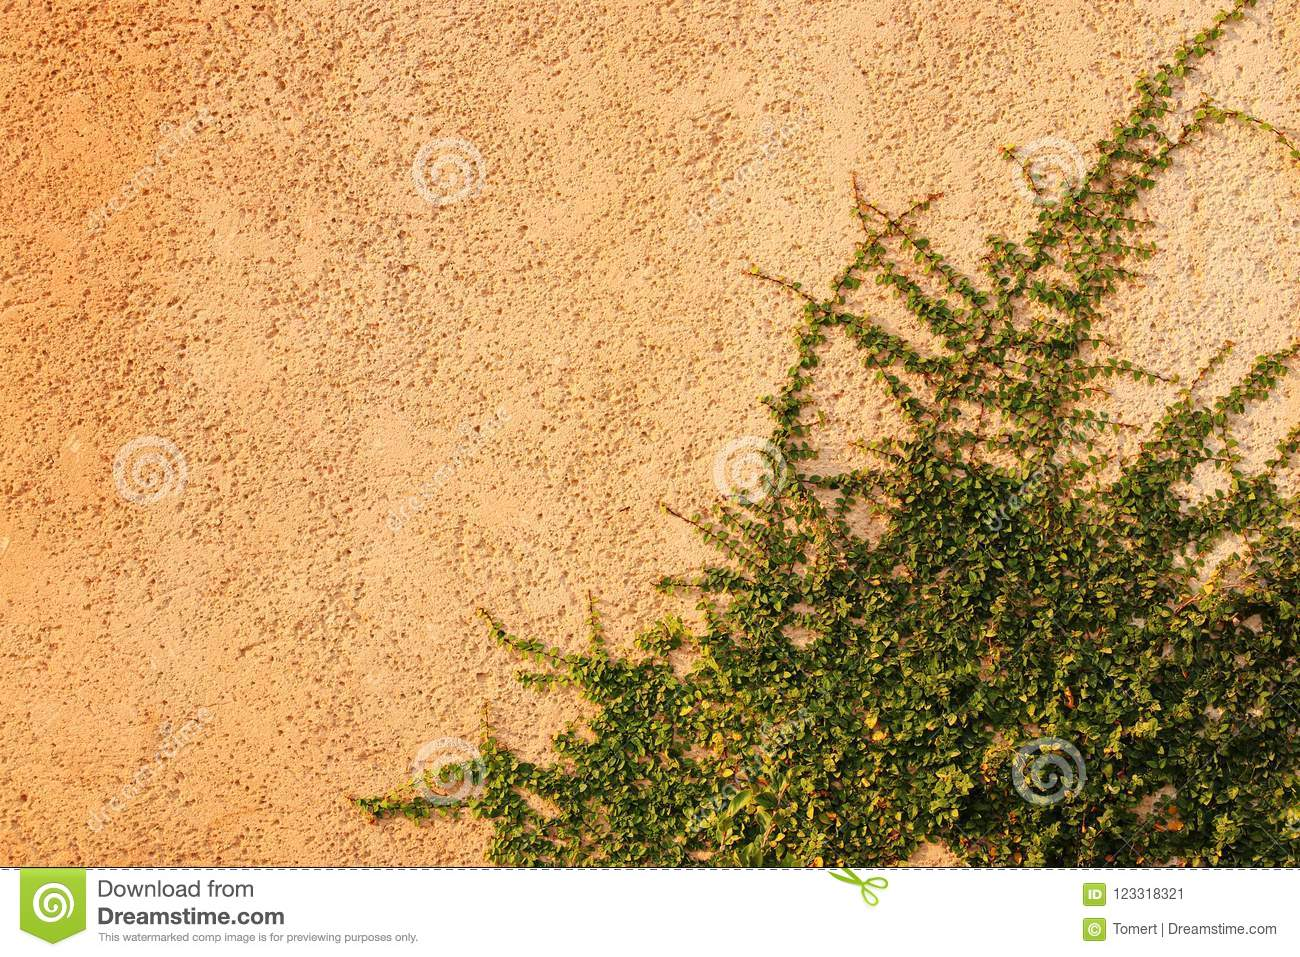 Green Creeper Plant On Textured Wall. Stock Image - Image of growth ...